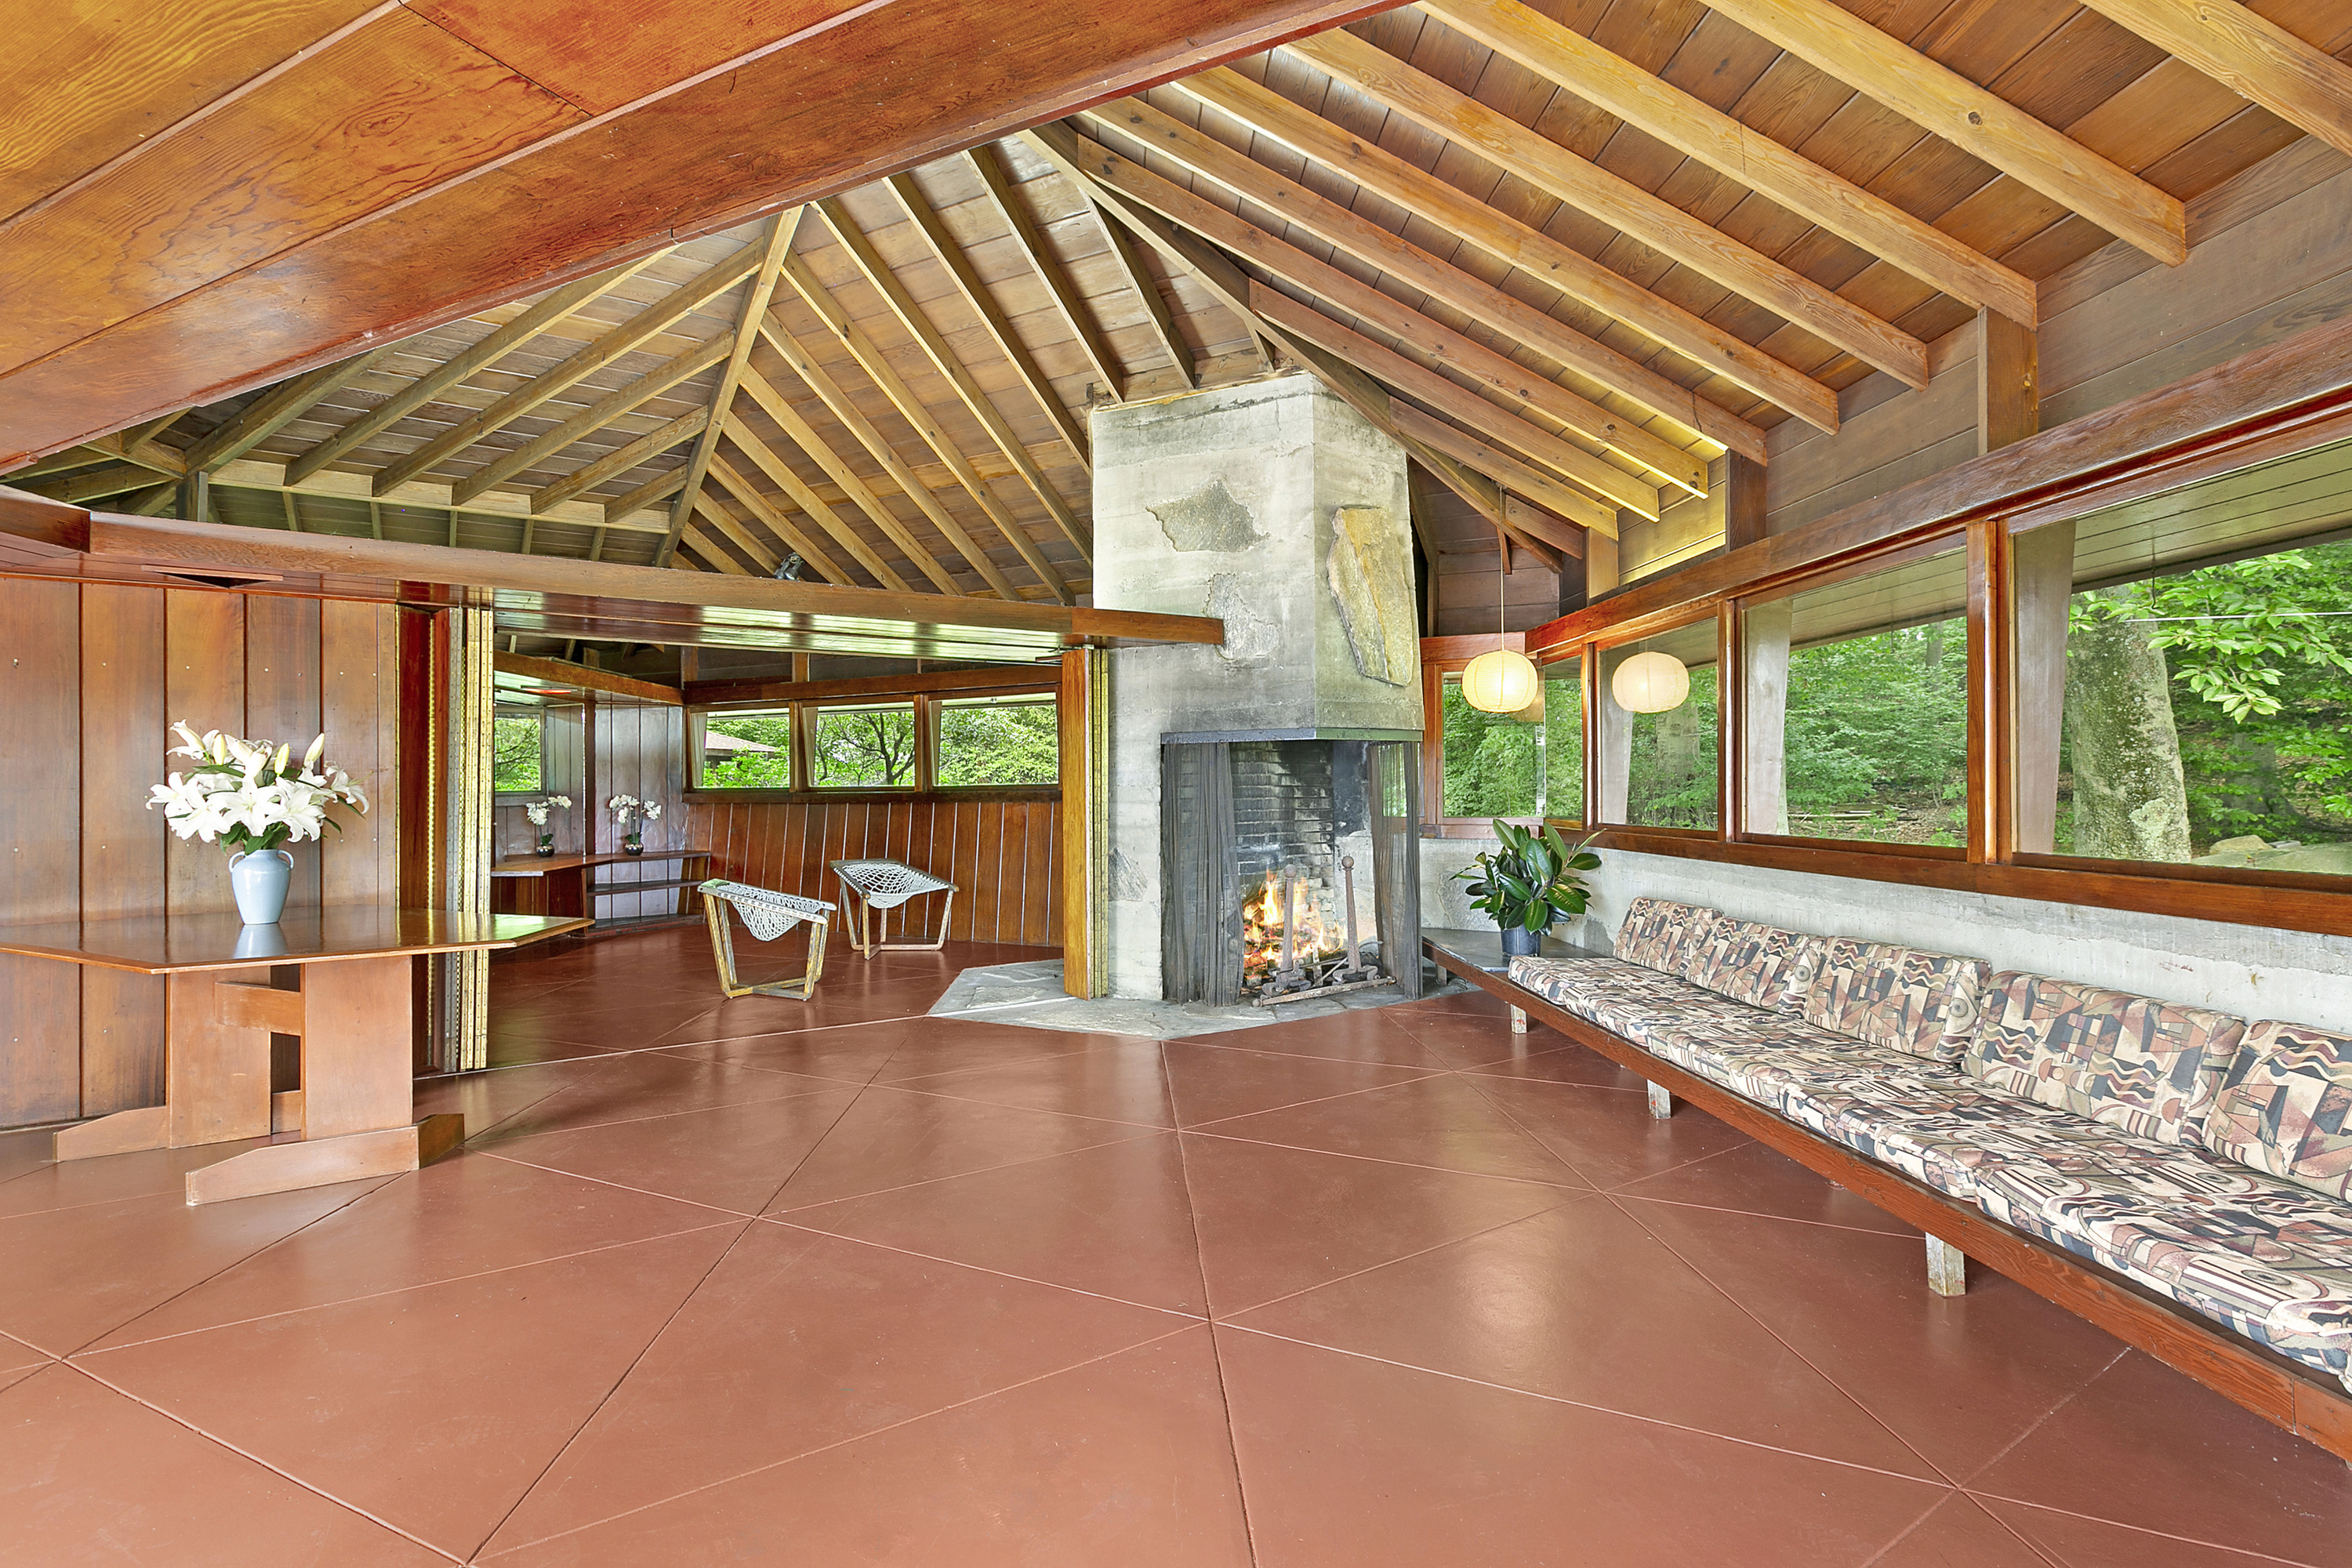 An island with 2 frank lloyd wright homes is up for sale - Frank lloyd wright houses for sale ...